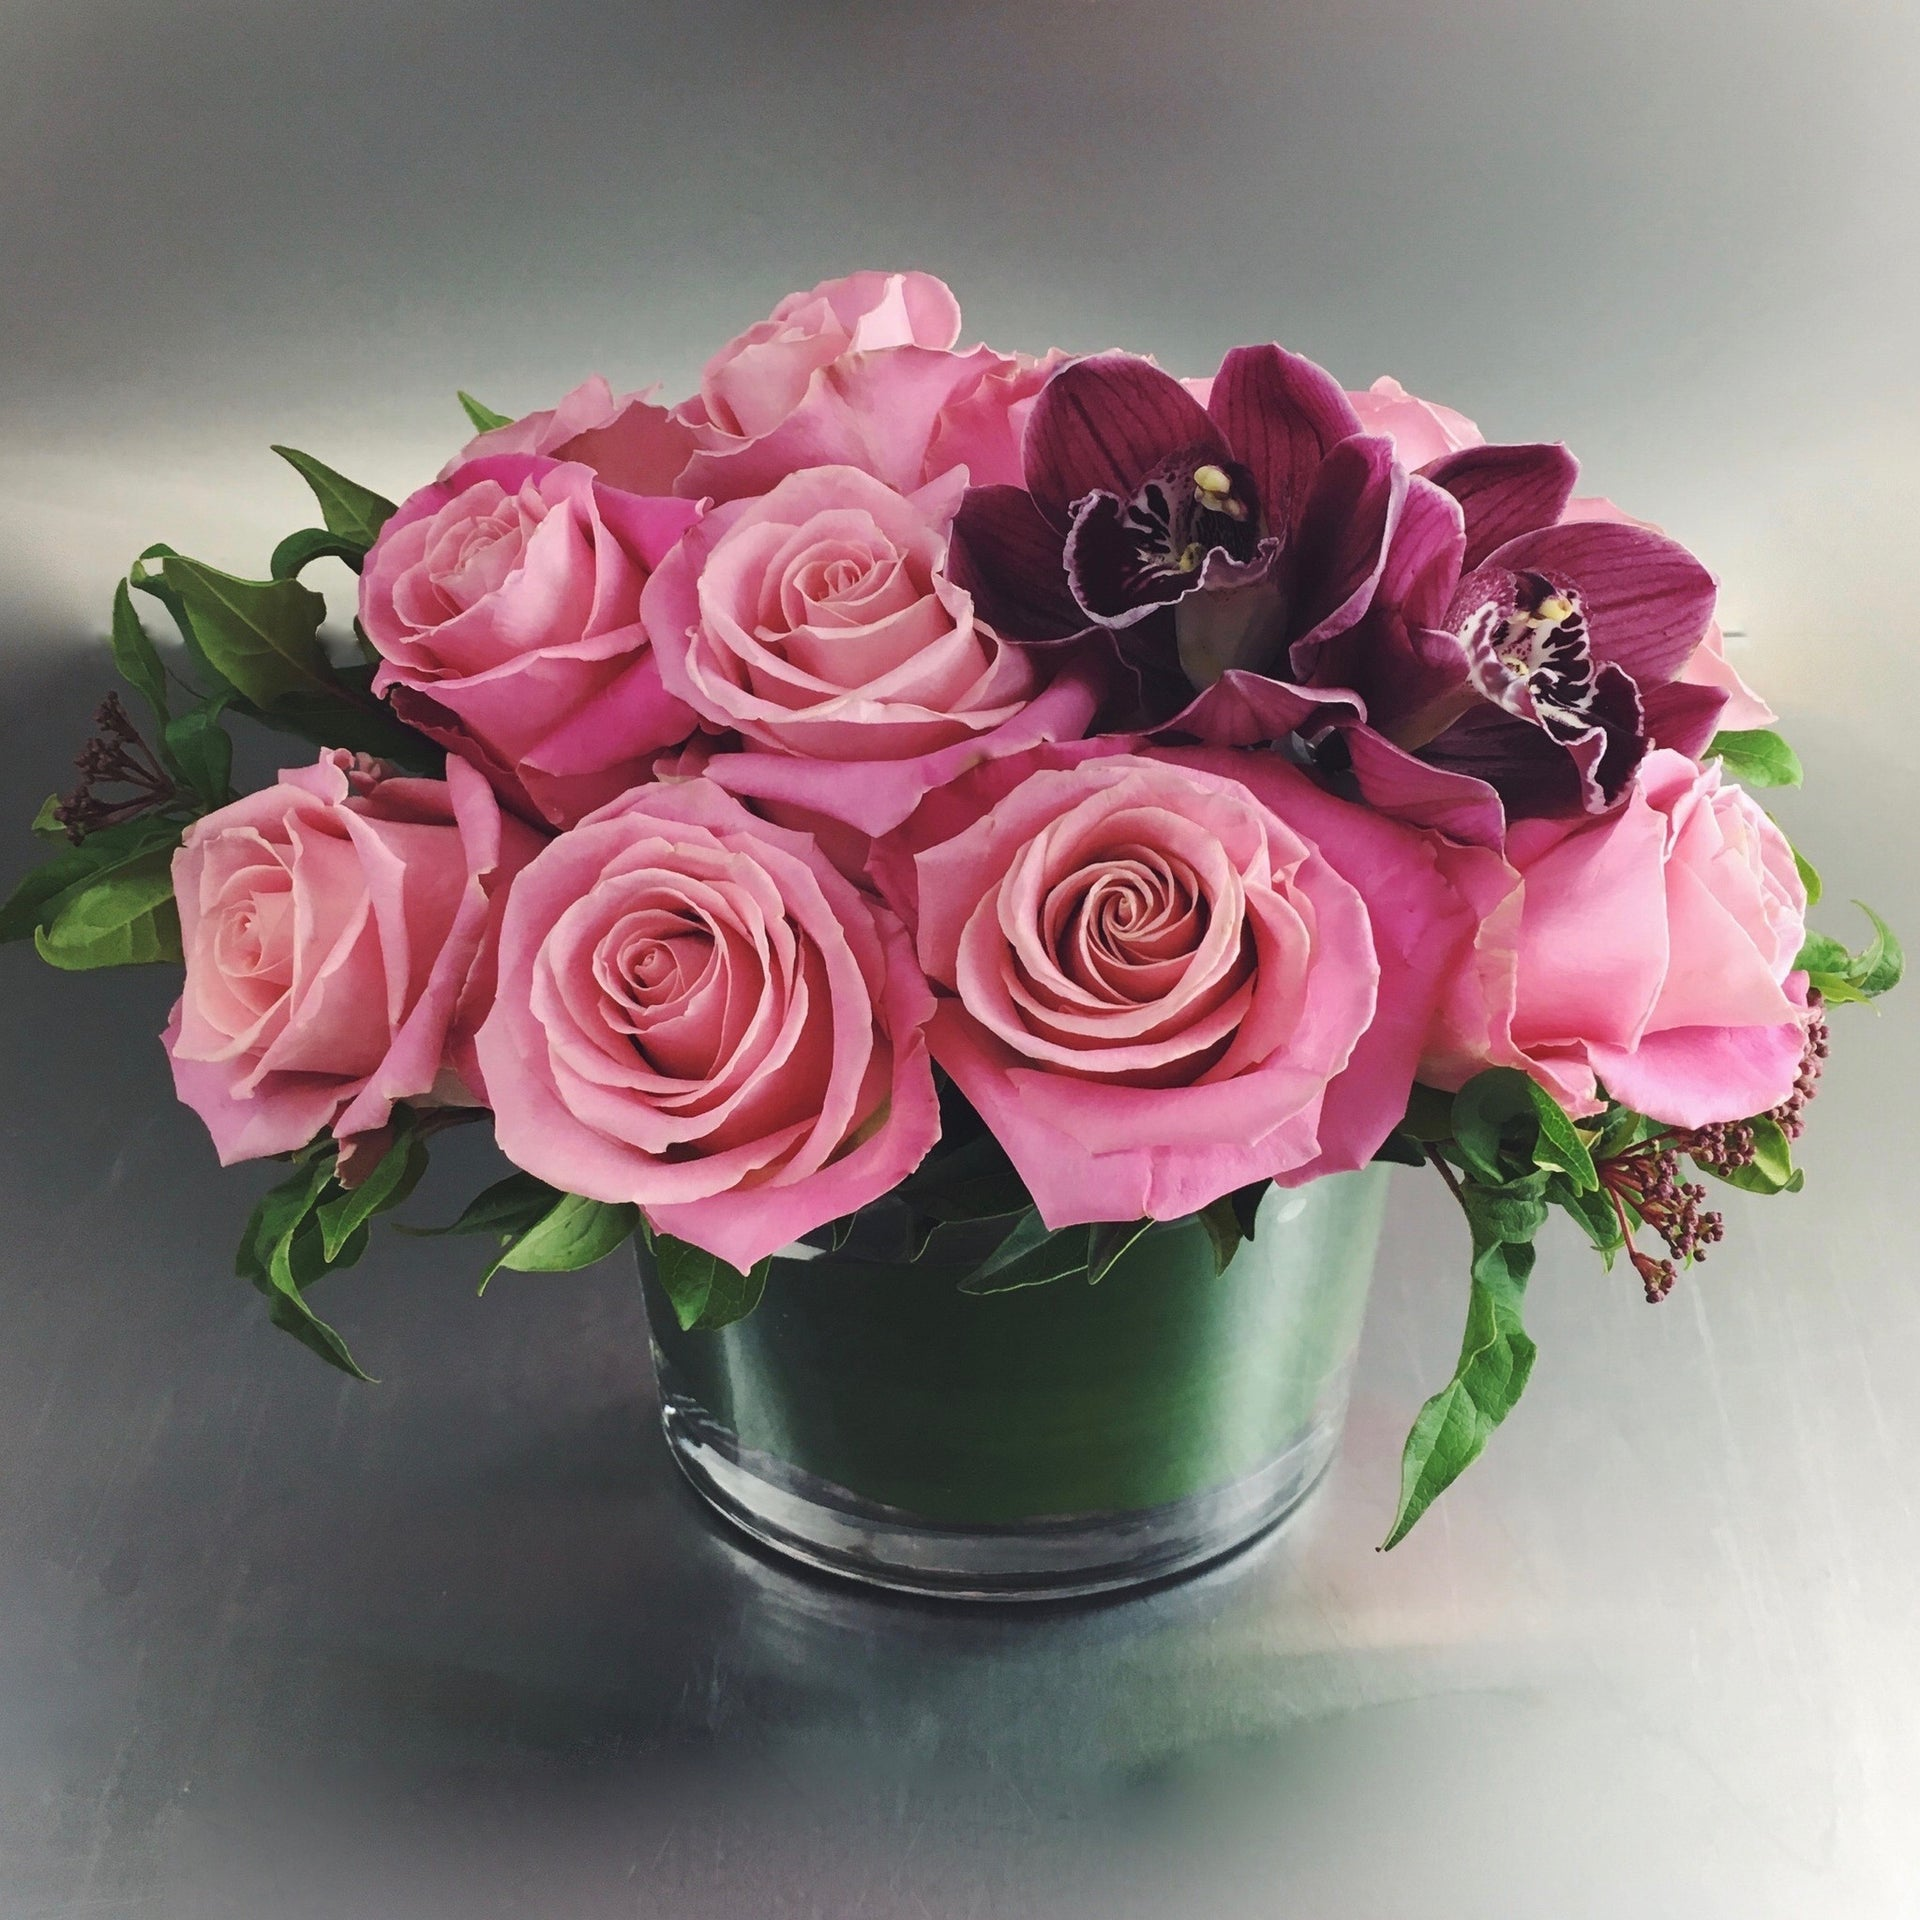 Dozen pink roses with cymbidium orchids in a low vase.